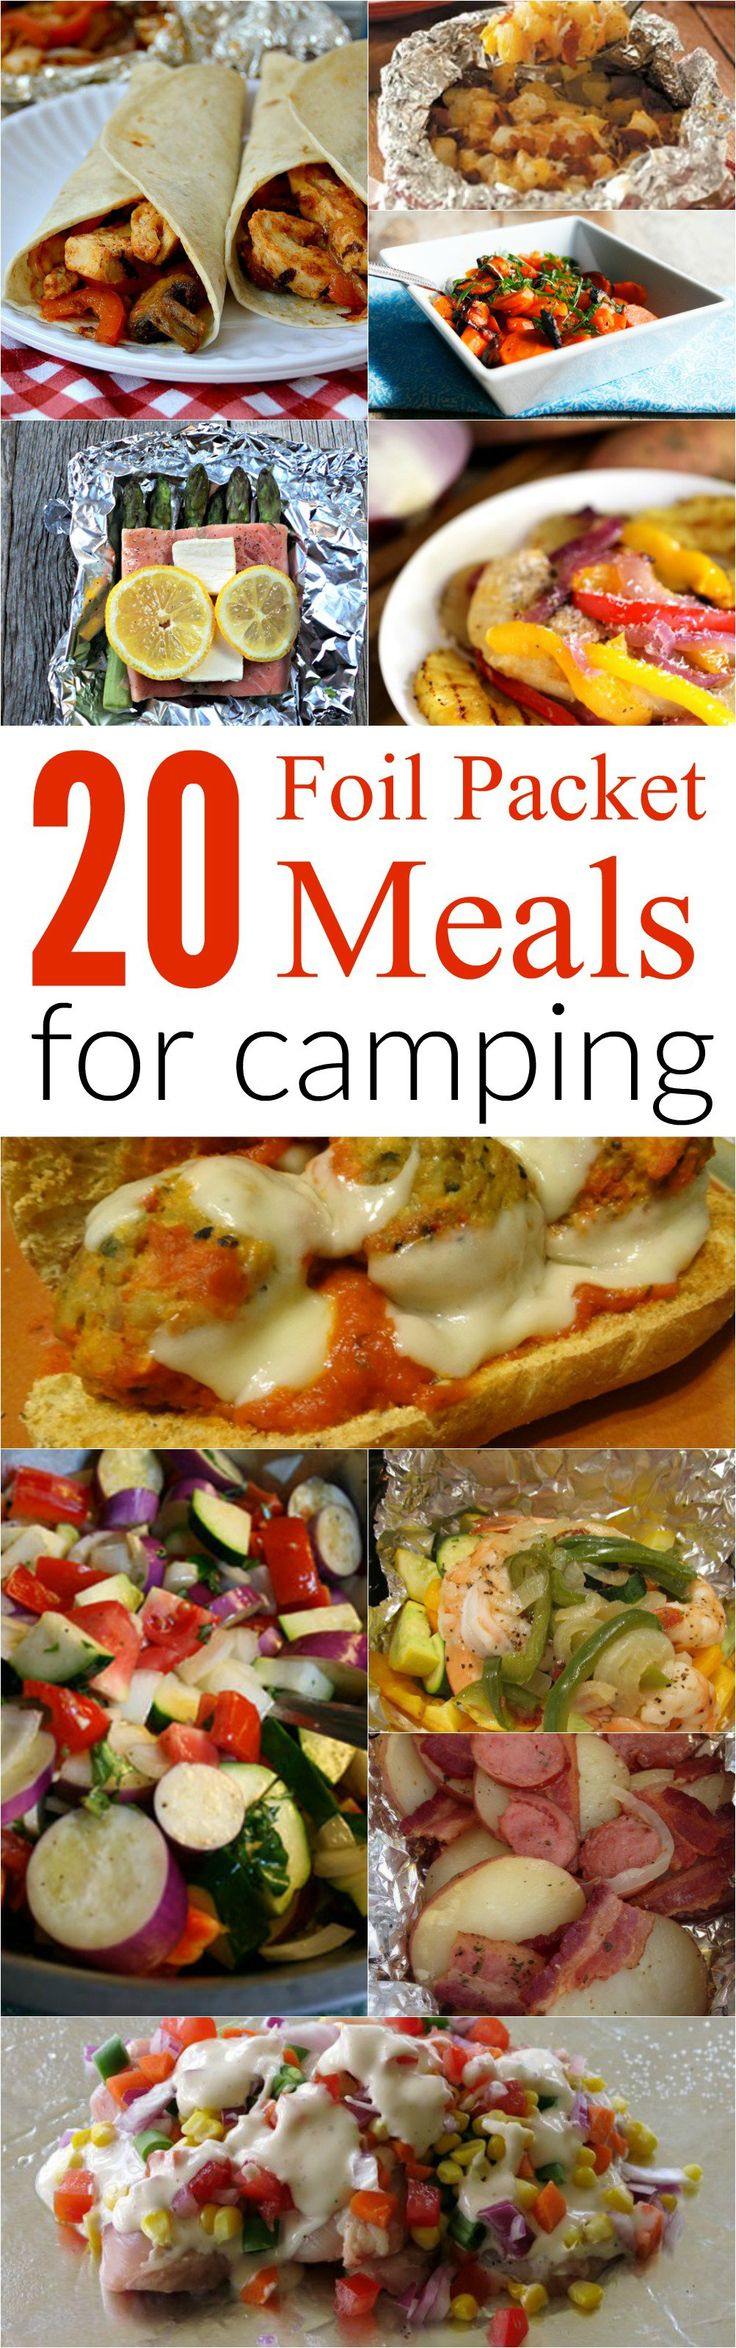 Top 20 Foil Meal Packet Recipes For Camping Great On The Go Ideas To Throw Grill